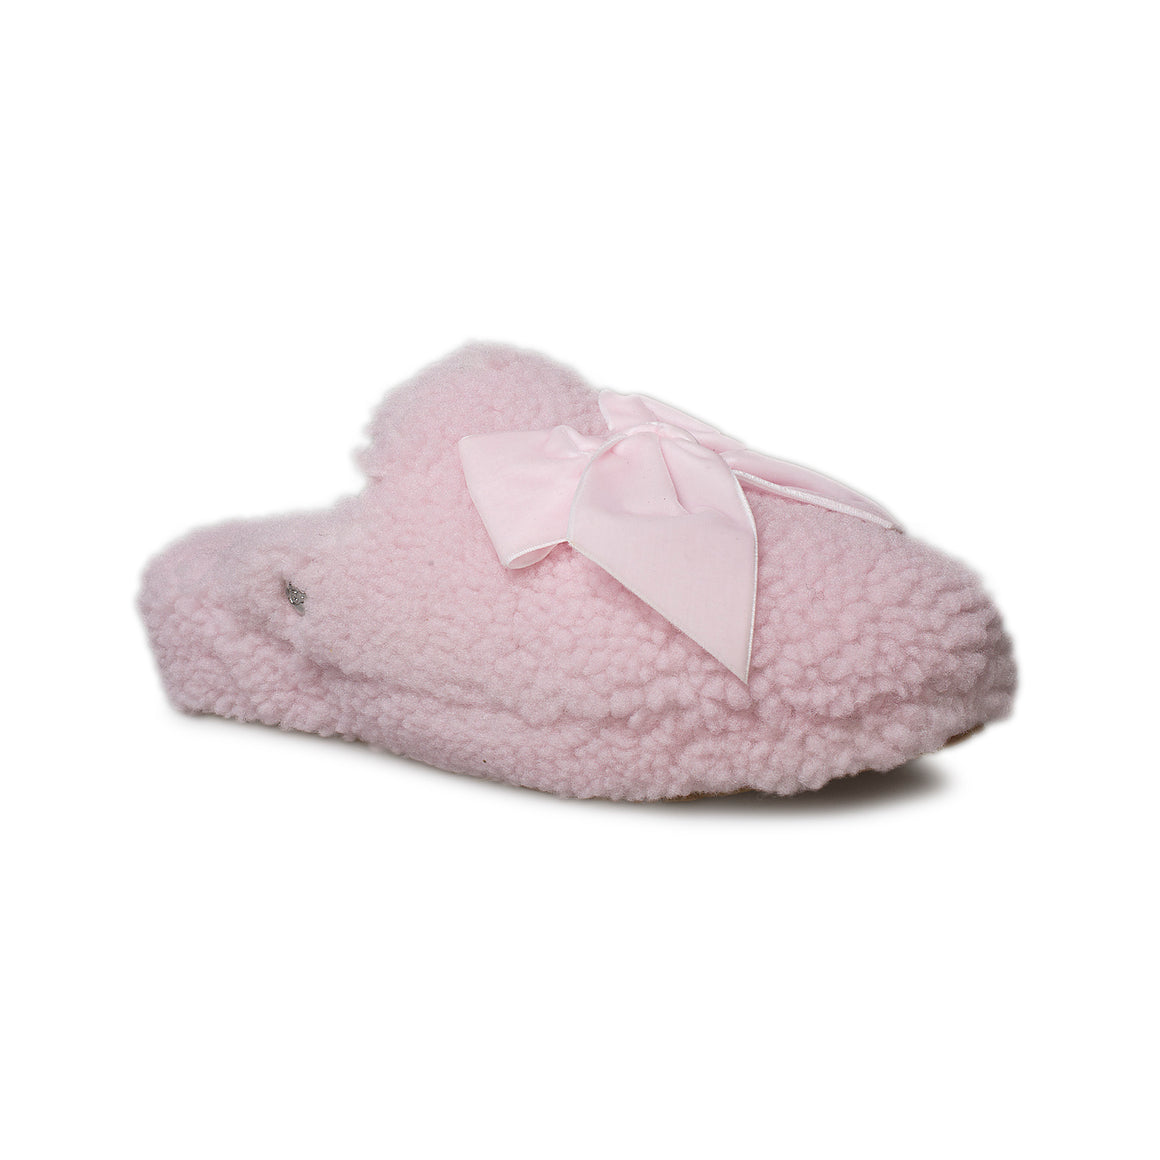 UGG Addison Velvet Bow Seashell Pink Slippers - Women's